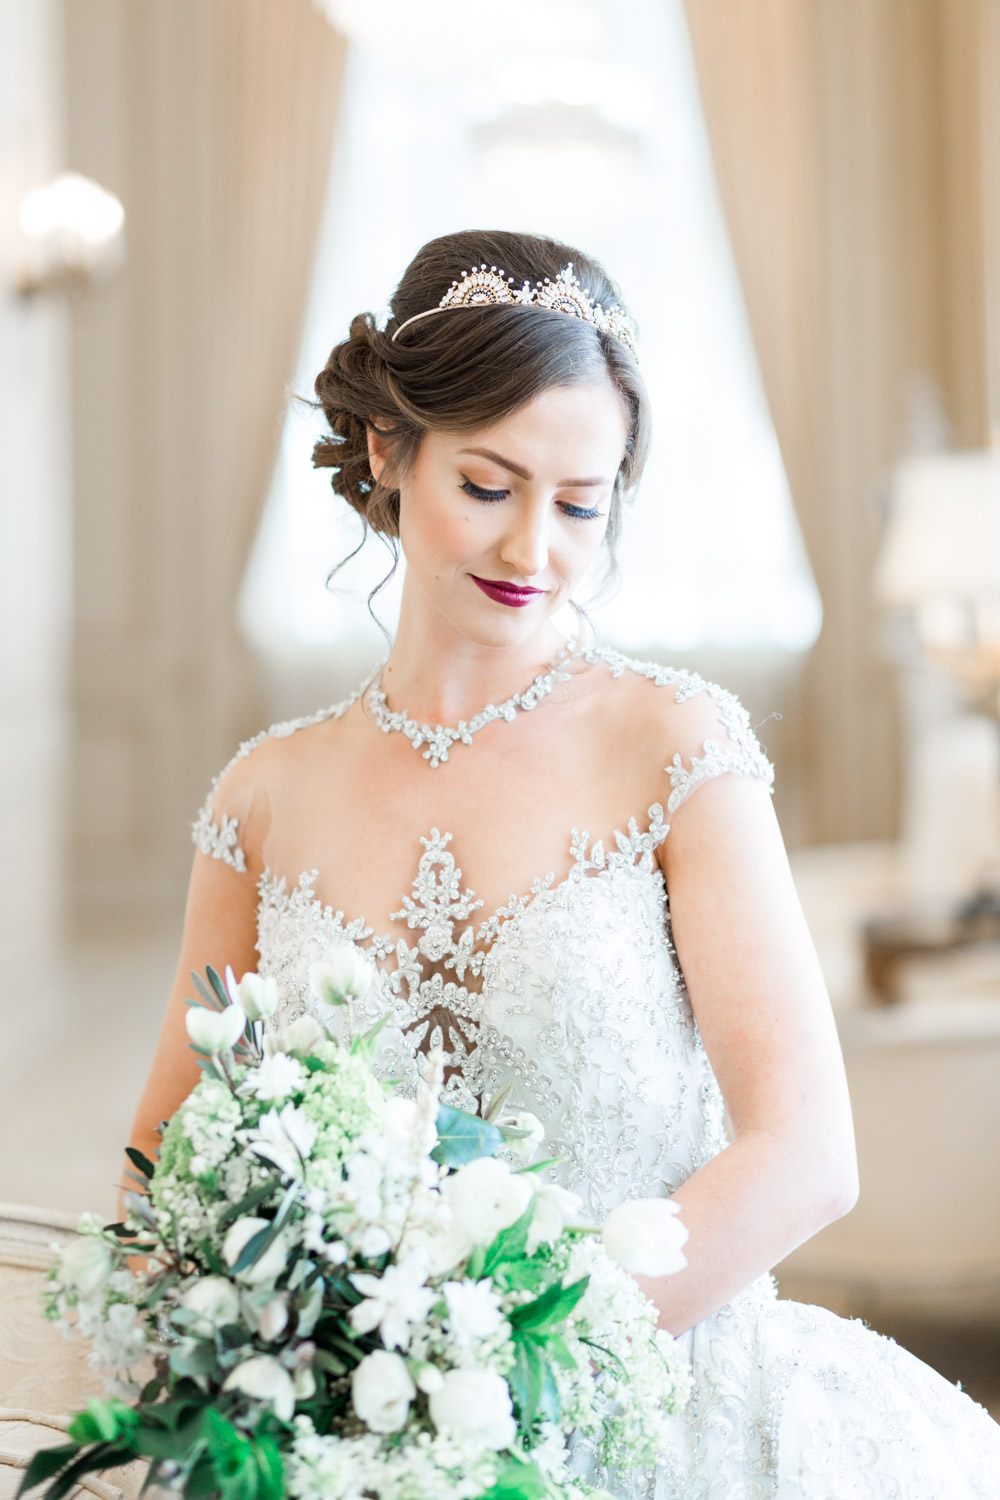 Royal bride in a YSA MAkino wedding gown, The Crown Inspired Westgate Hotel Wedding in San Diego by Cavin Elizabeth Photography